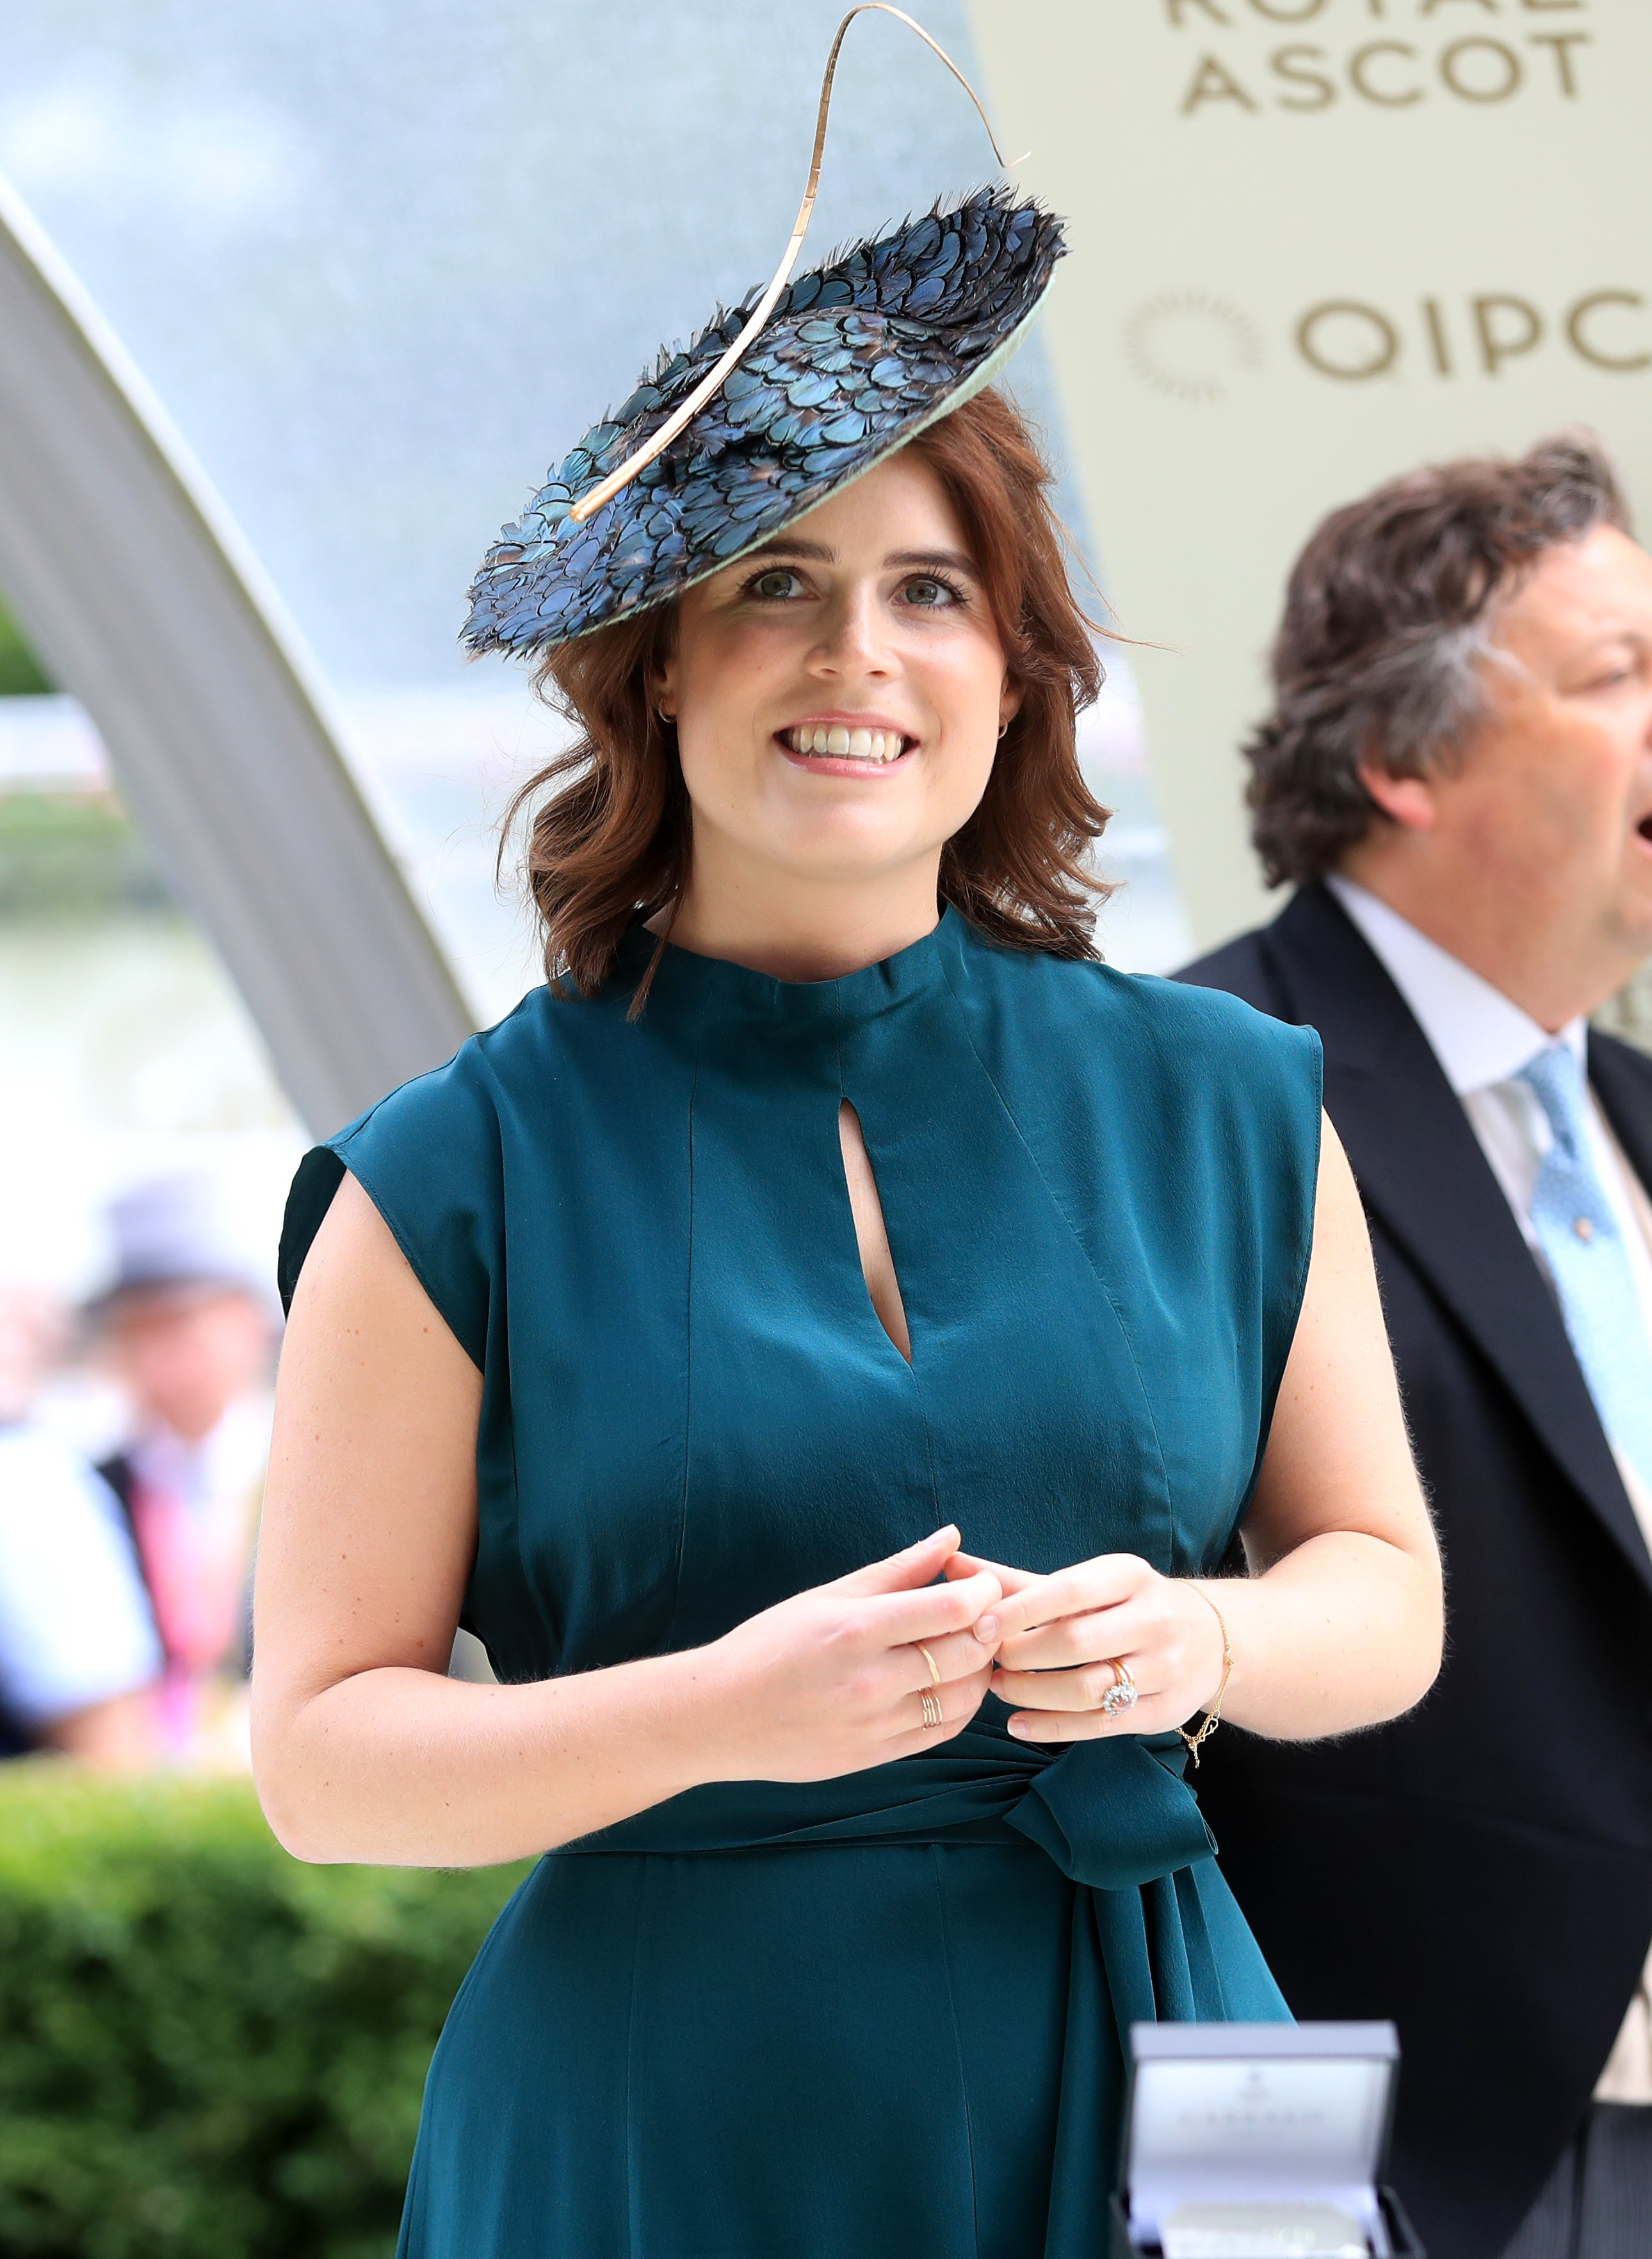 Princess Eugenie in the winners enclosure during day three of Royal Ascot at Ascot Racecourse in June 2019. | Source: Getty Images.